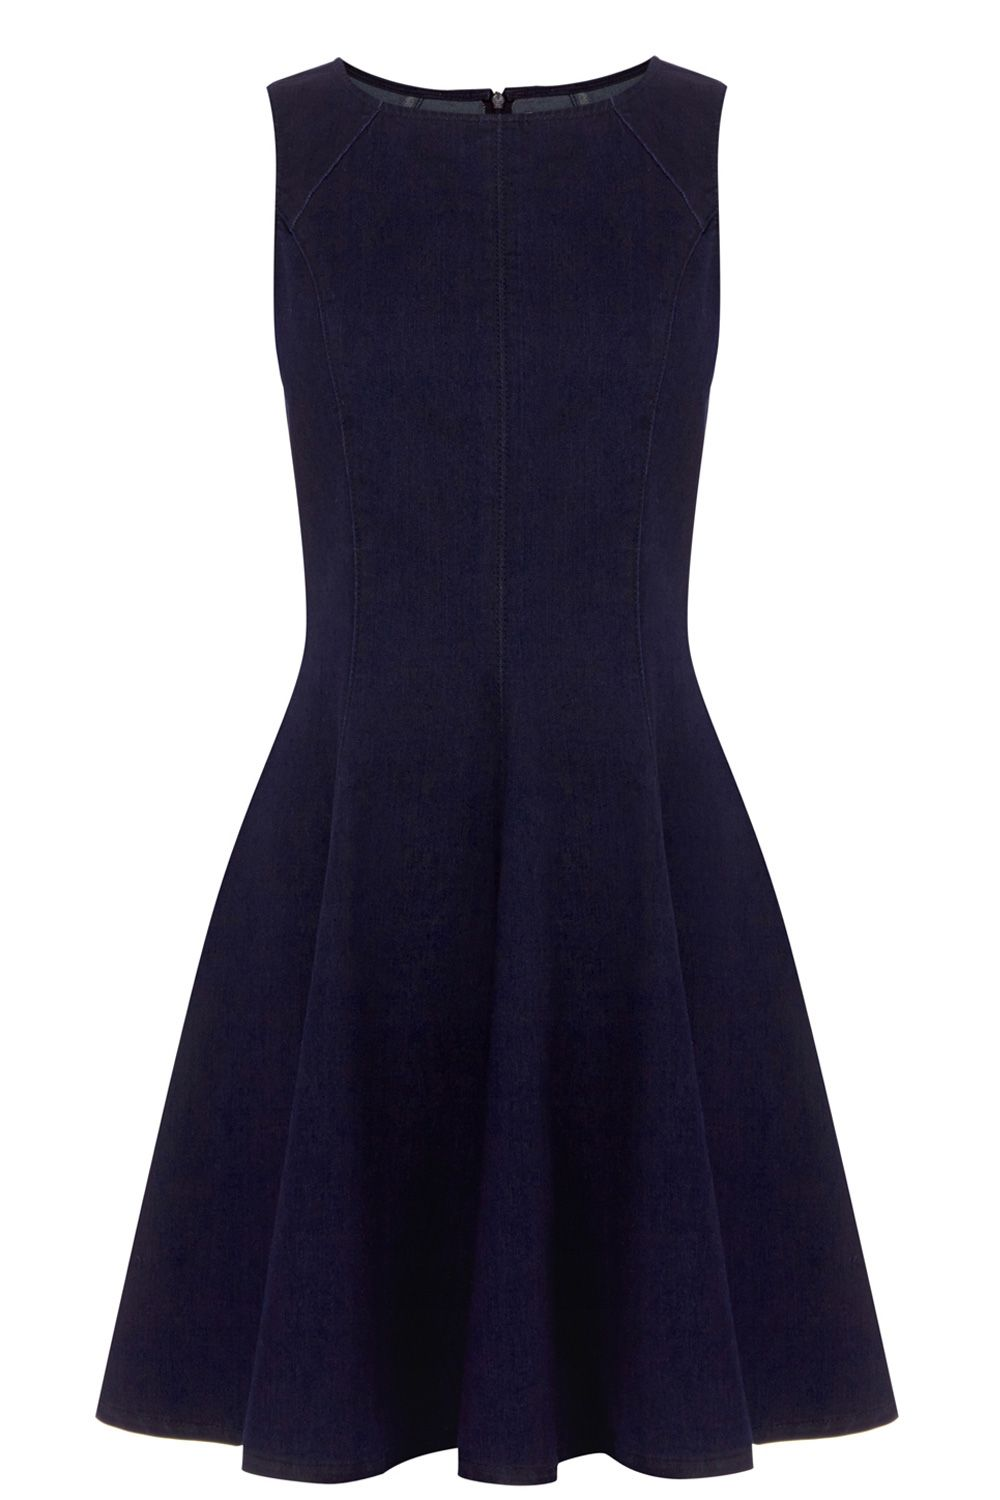 Pippa structured dress